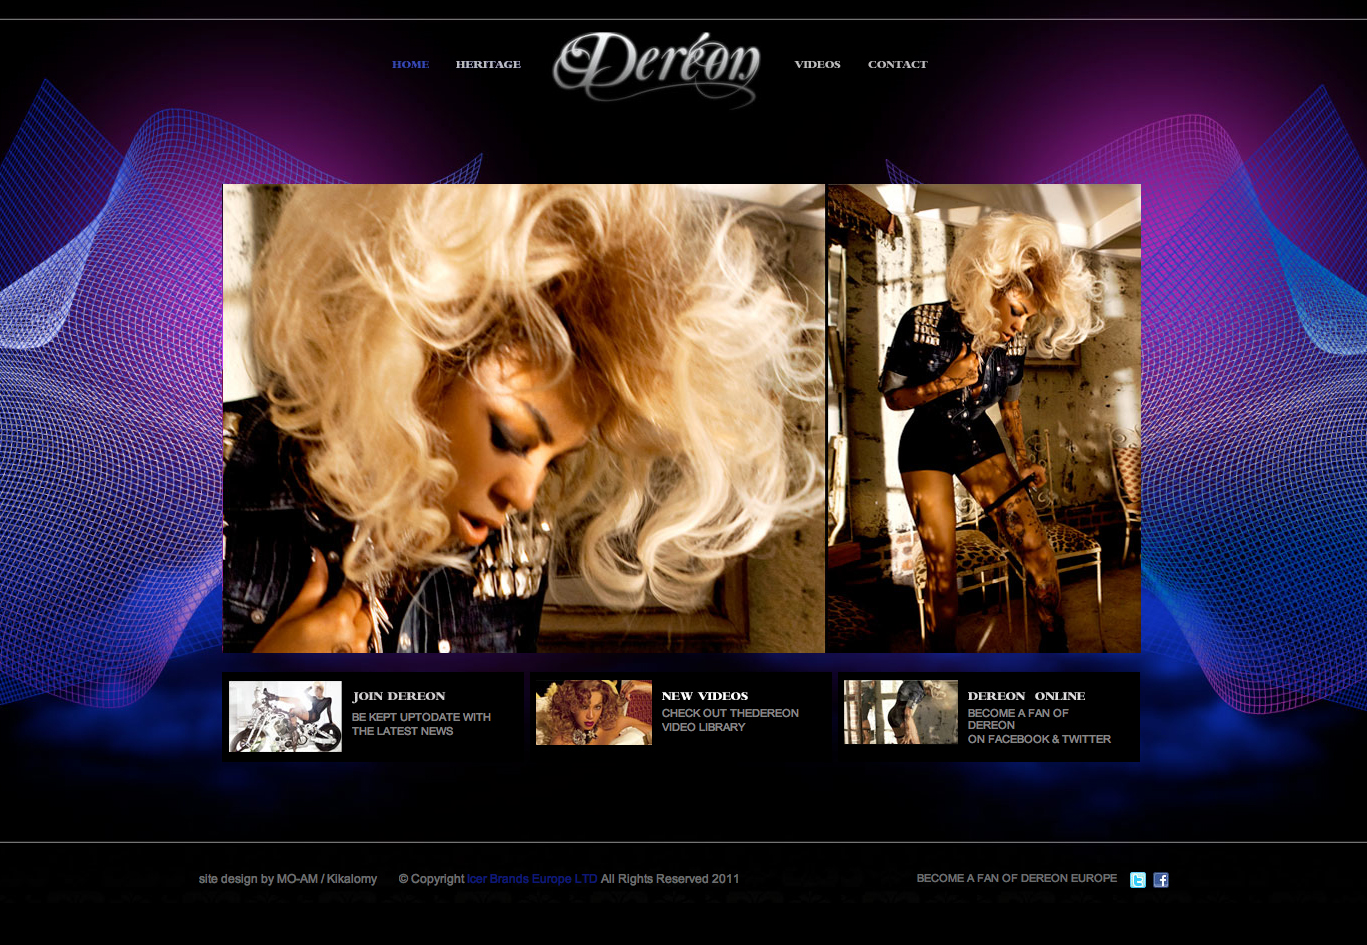 Beyonce Dereon Europe Website